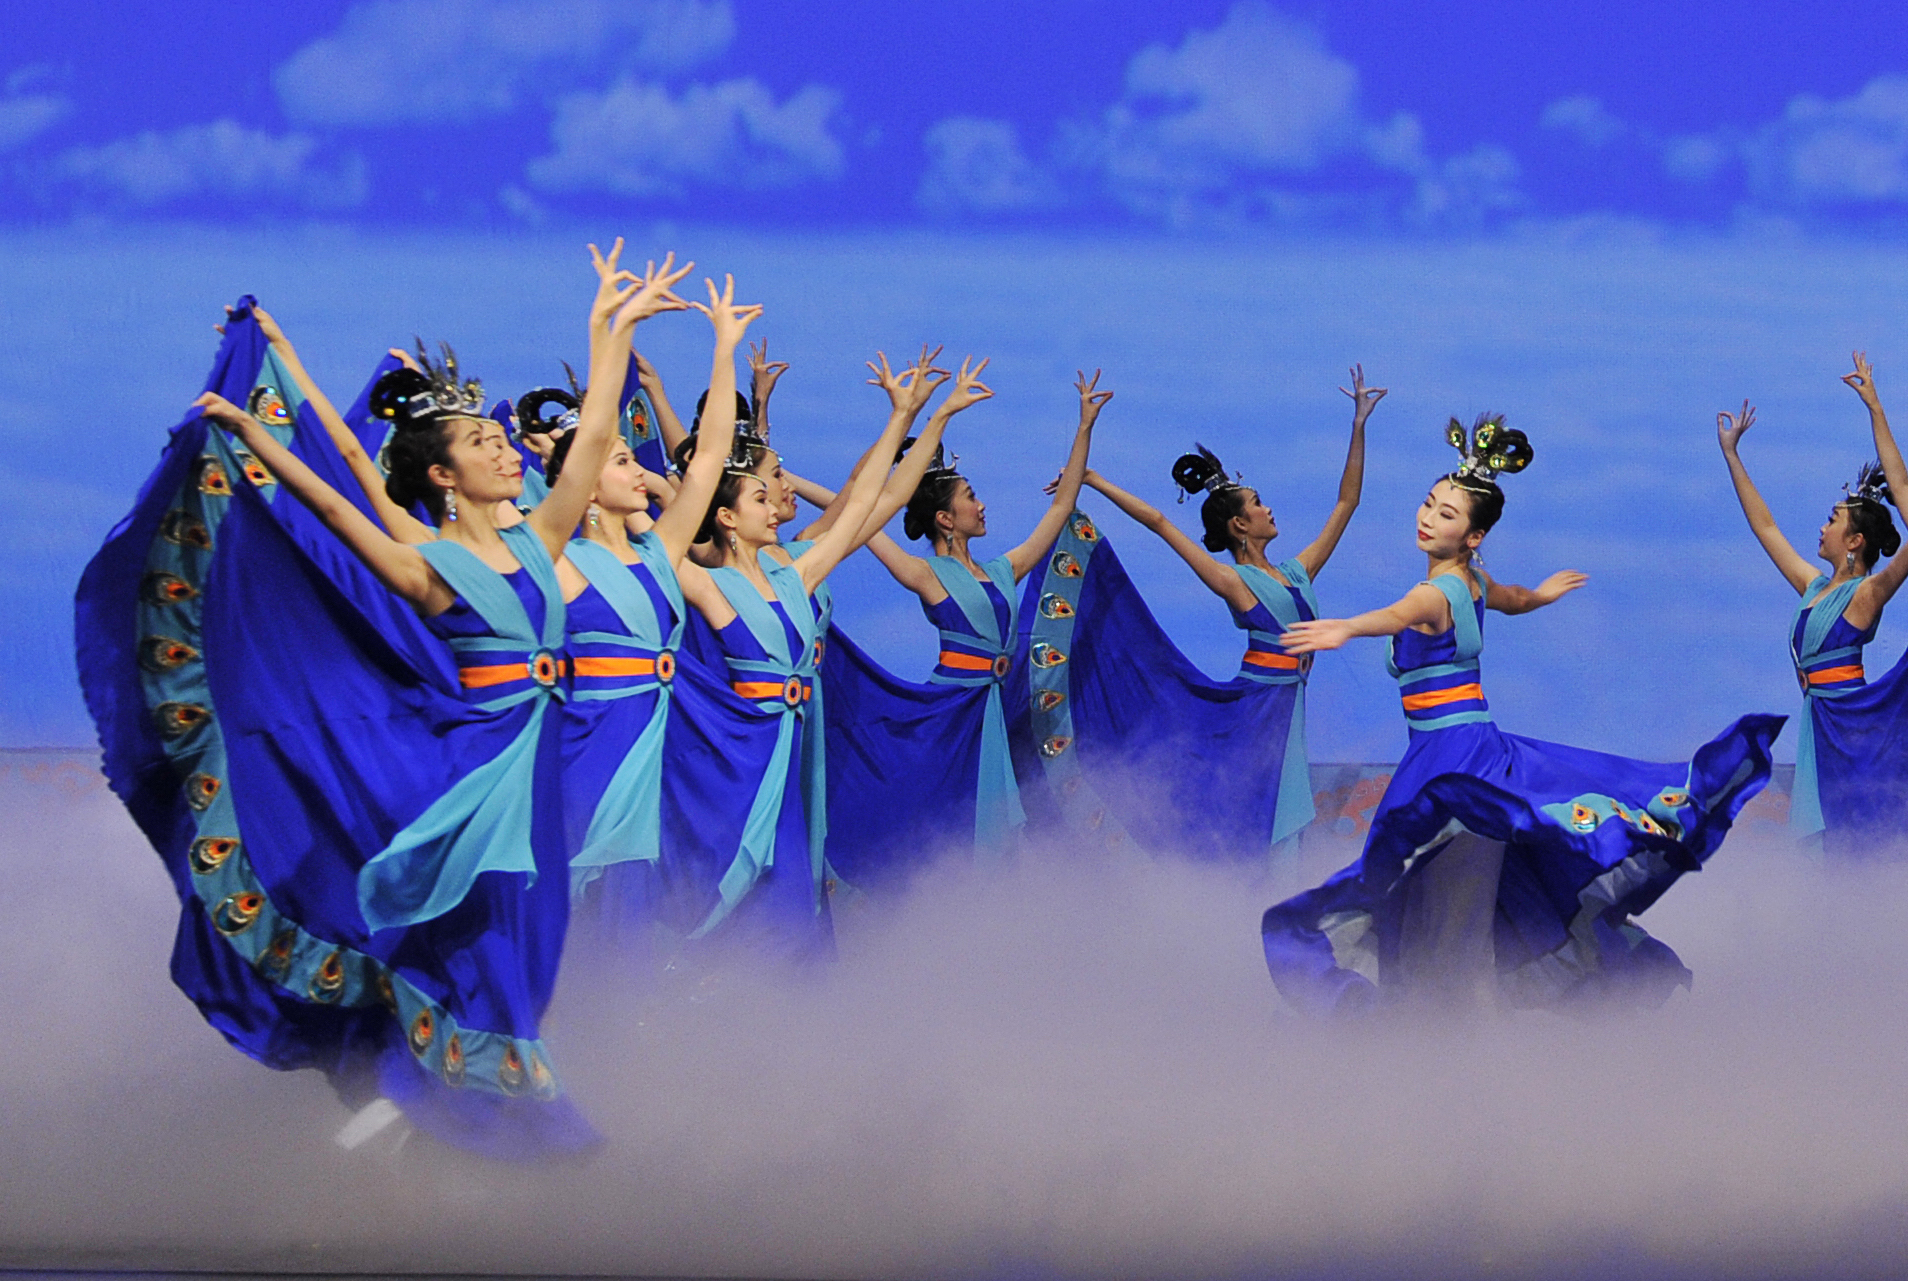 Shen Yun Performing Arts comes to Phoenix